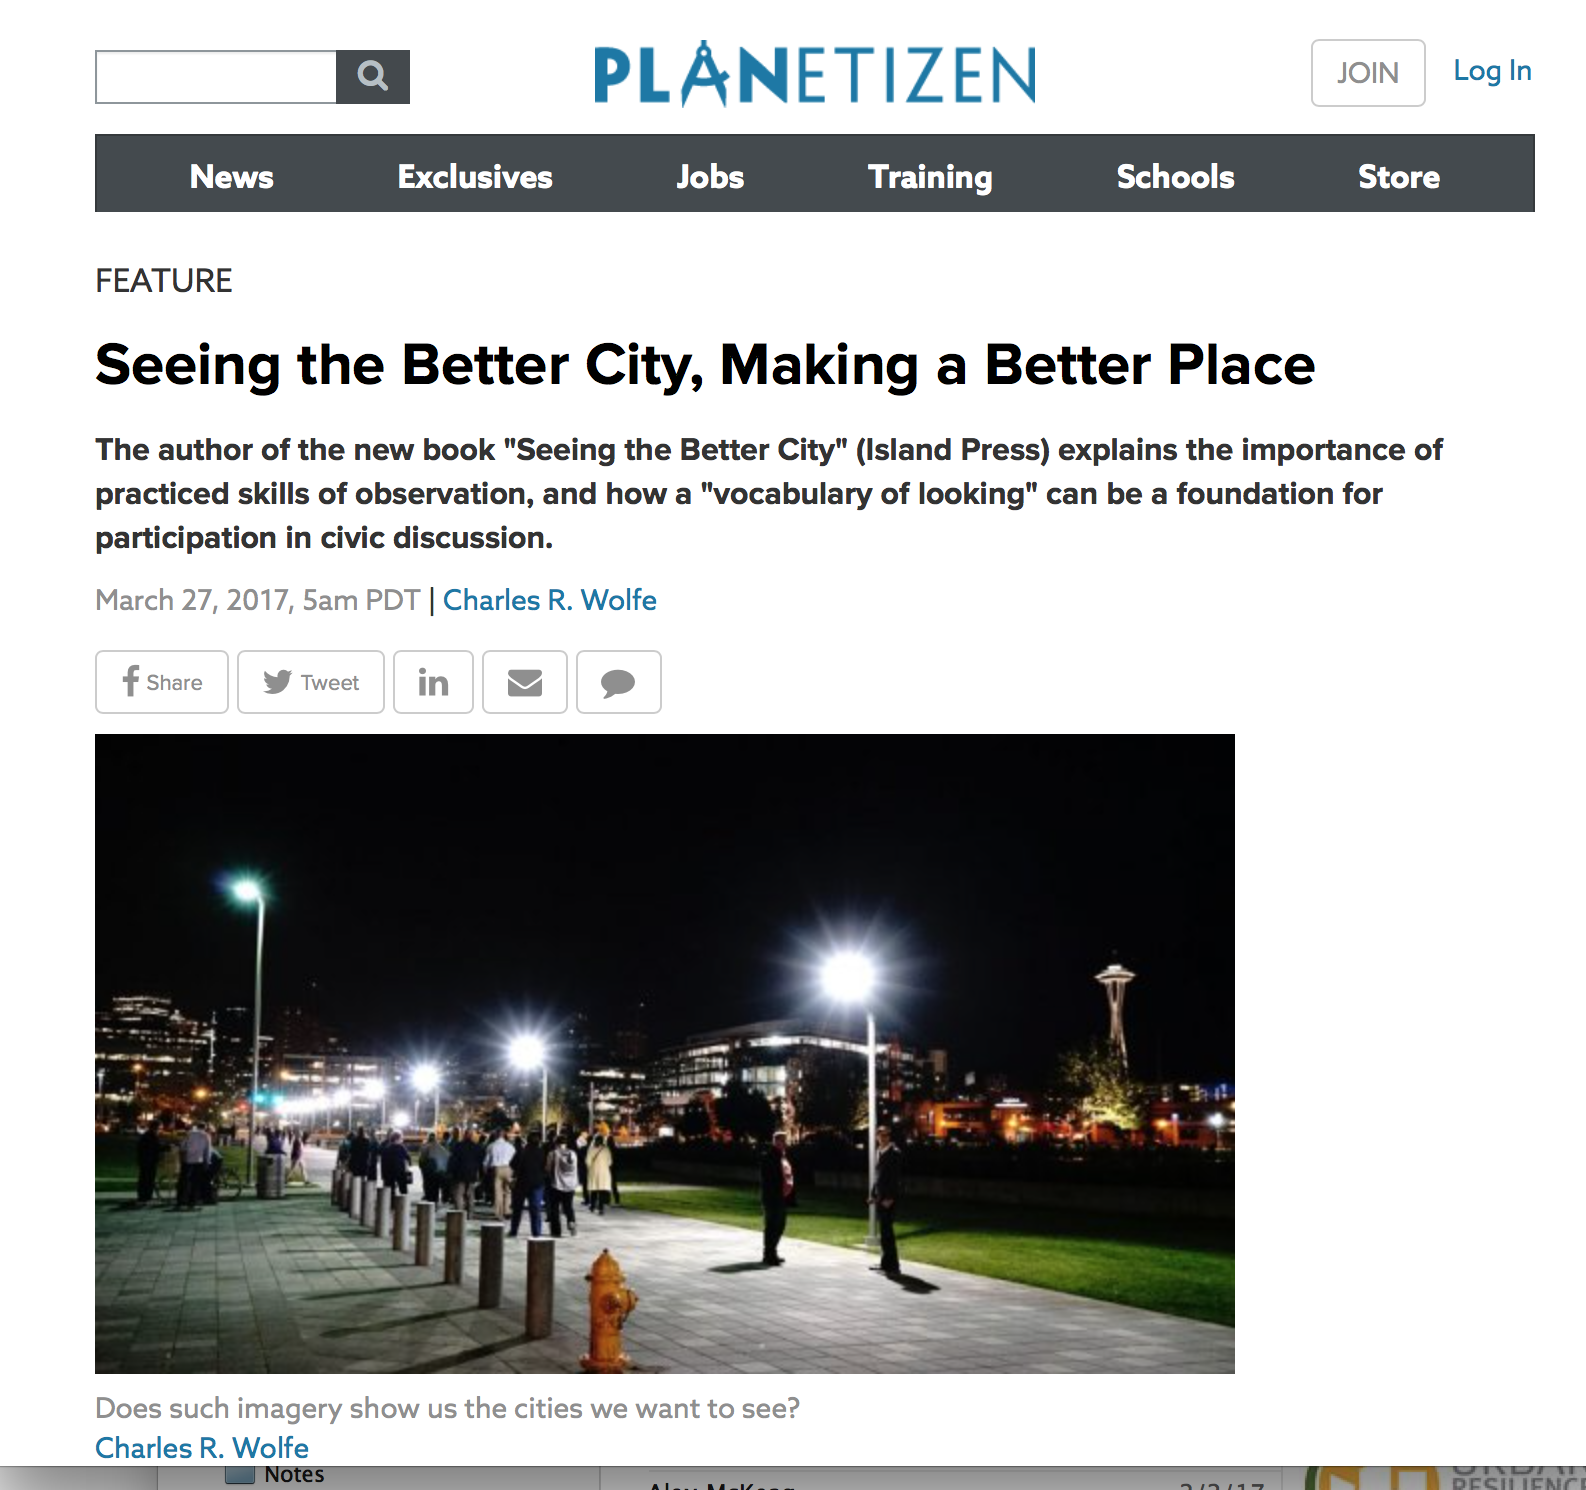 'seeing the better city' as a placemaking tool